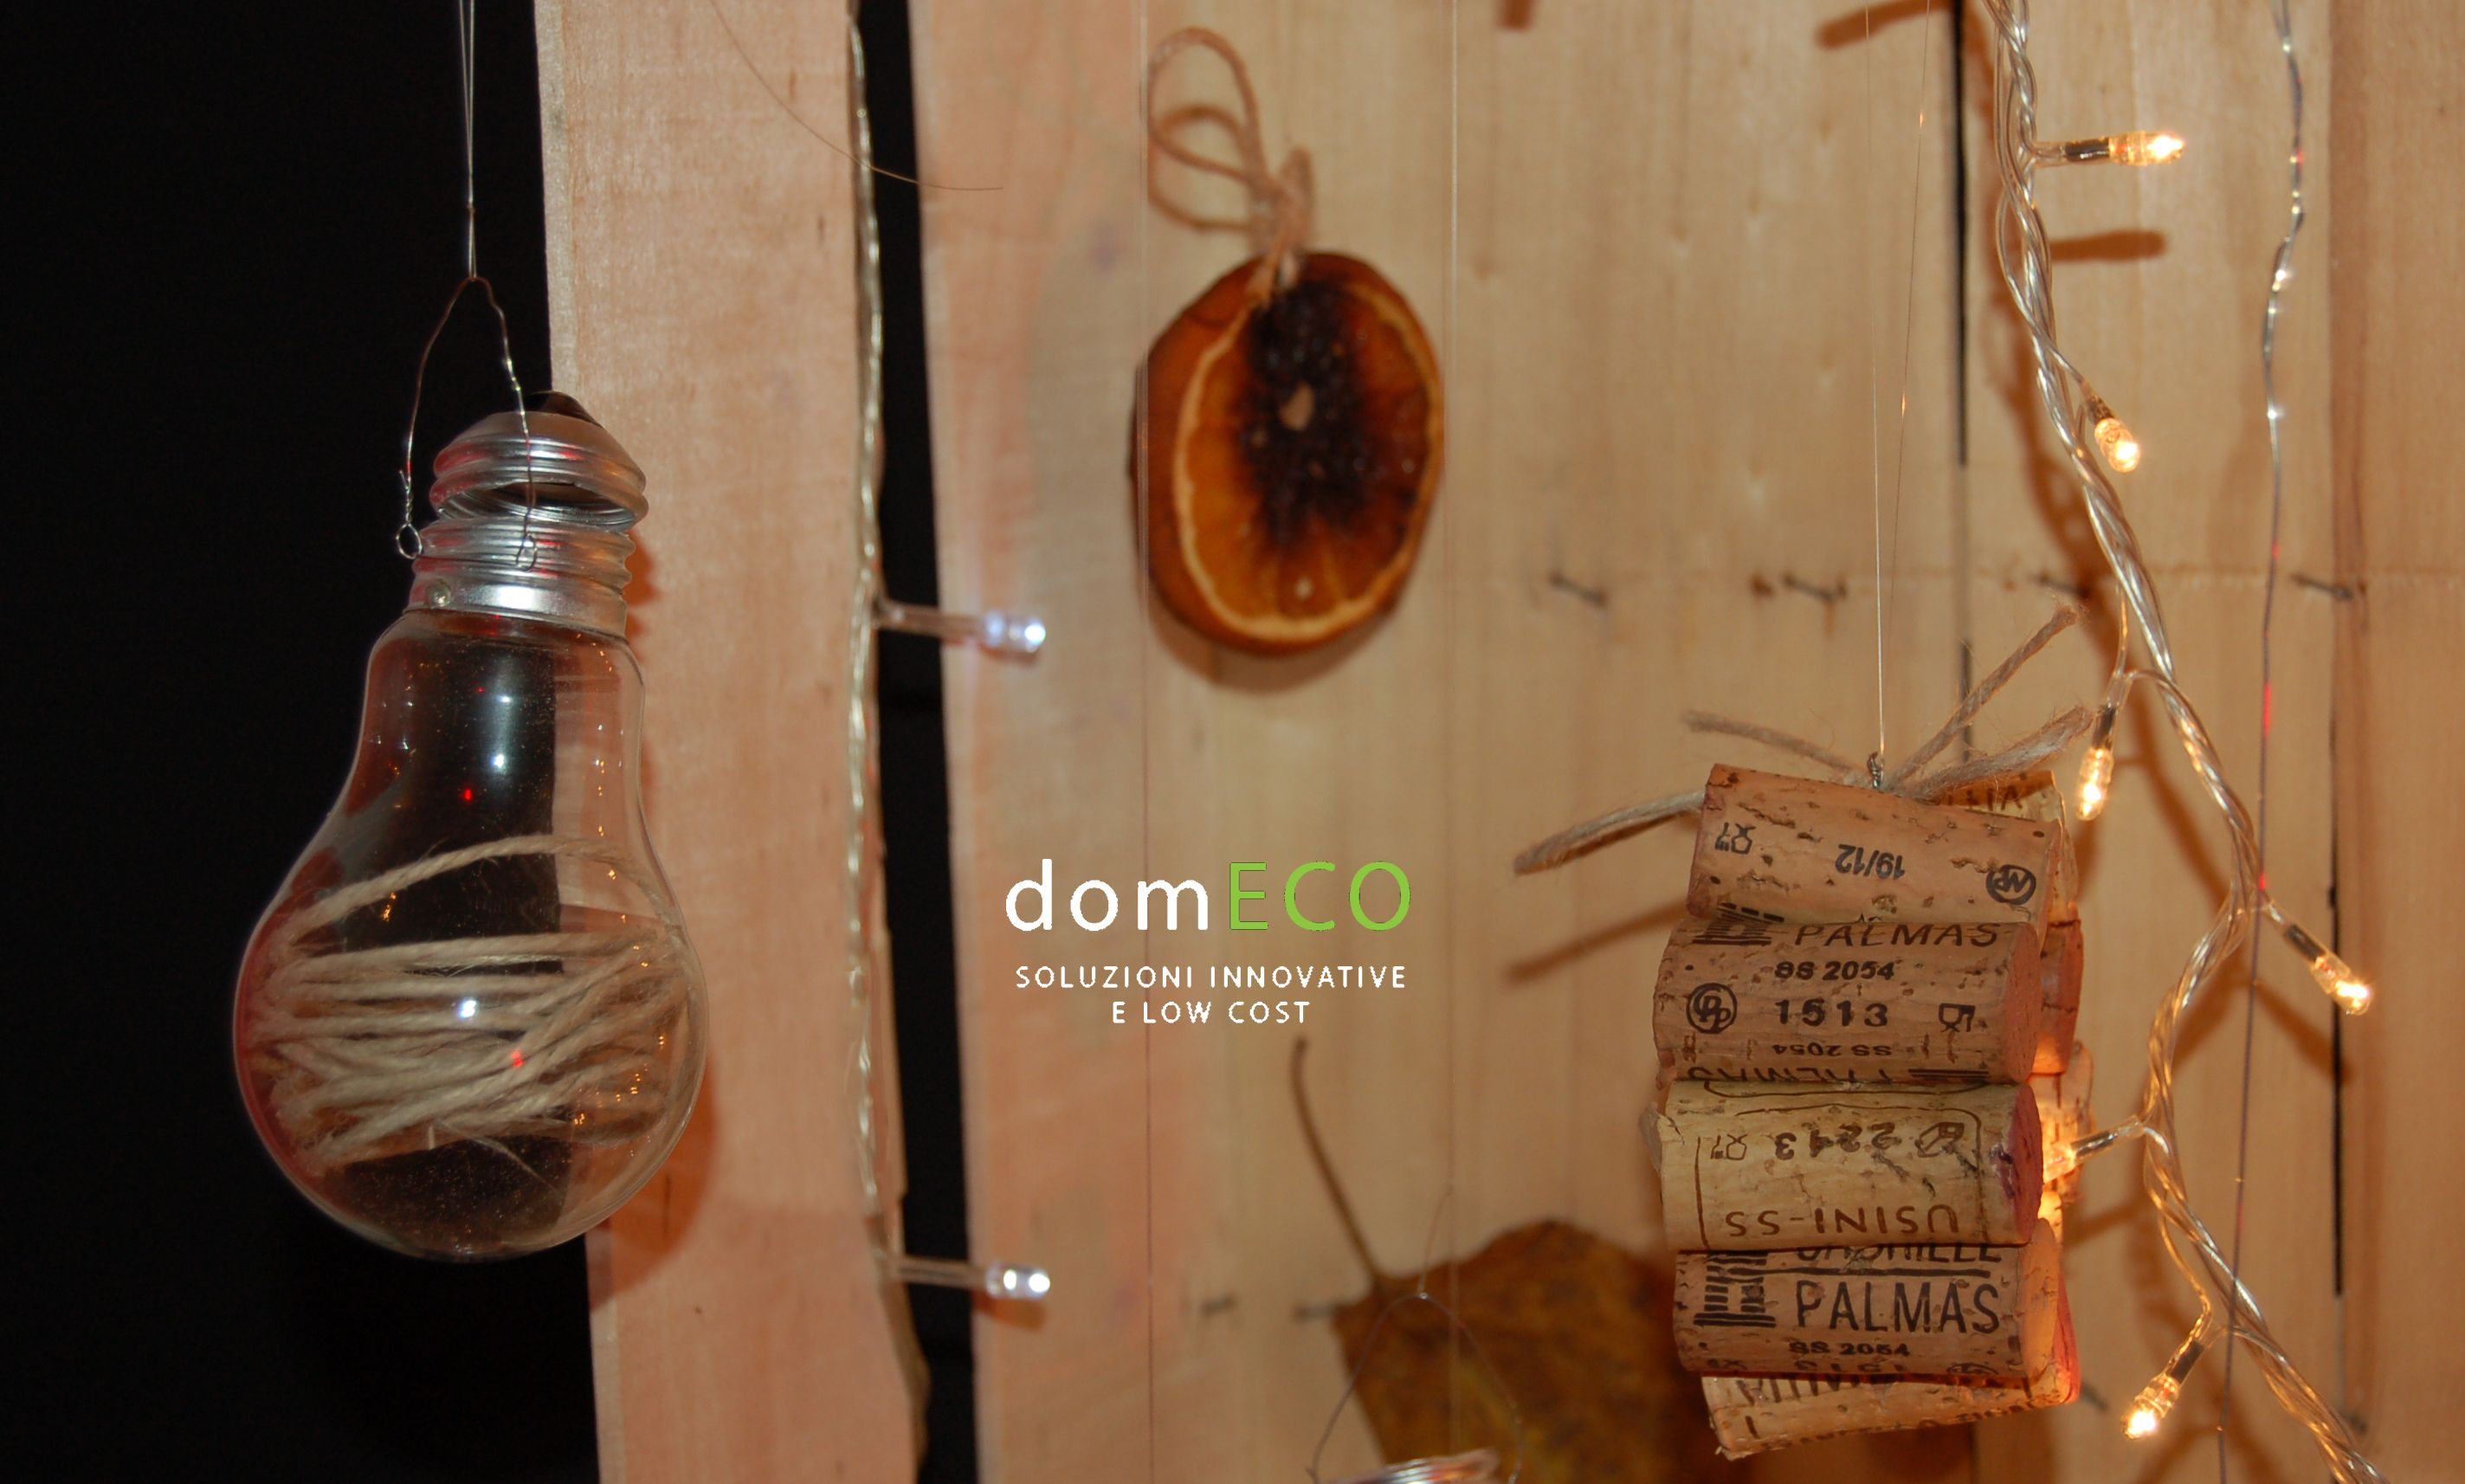 Fruit crates xmas installation by domECO. All decorations are recycled. www.domeco.it